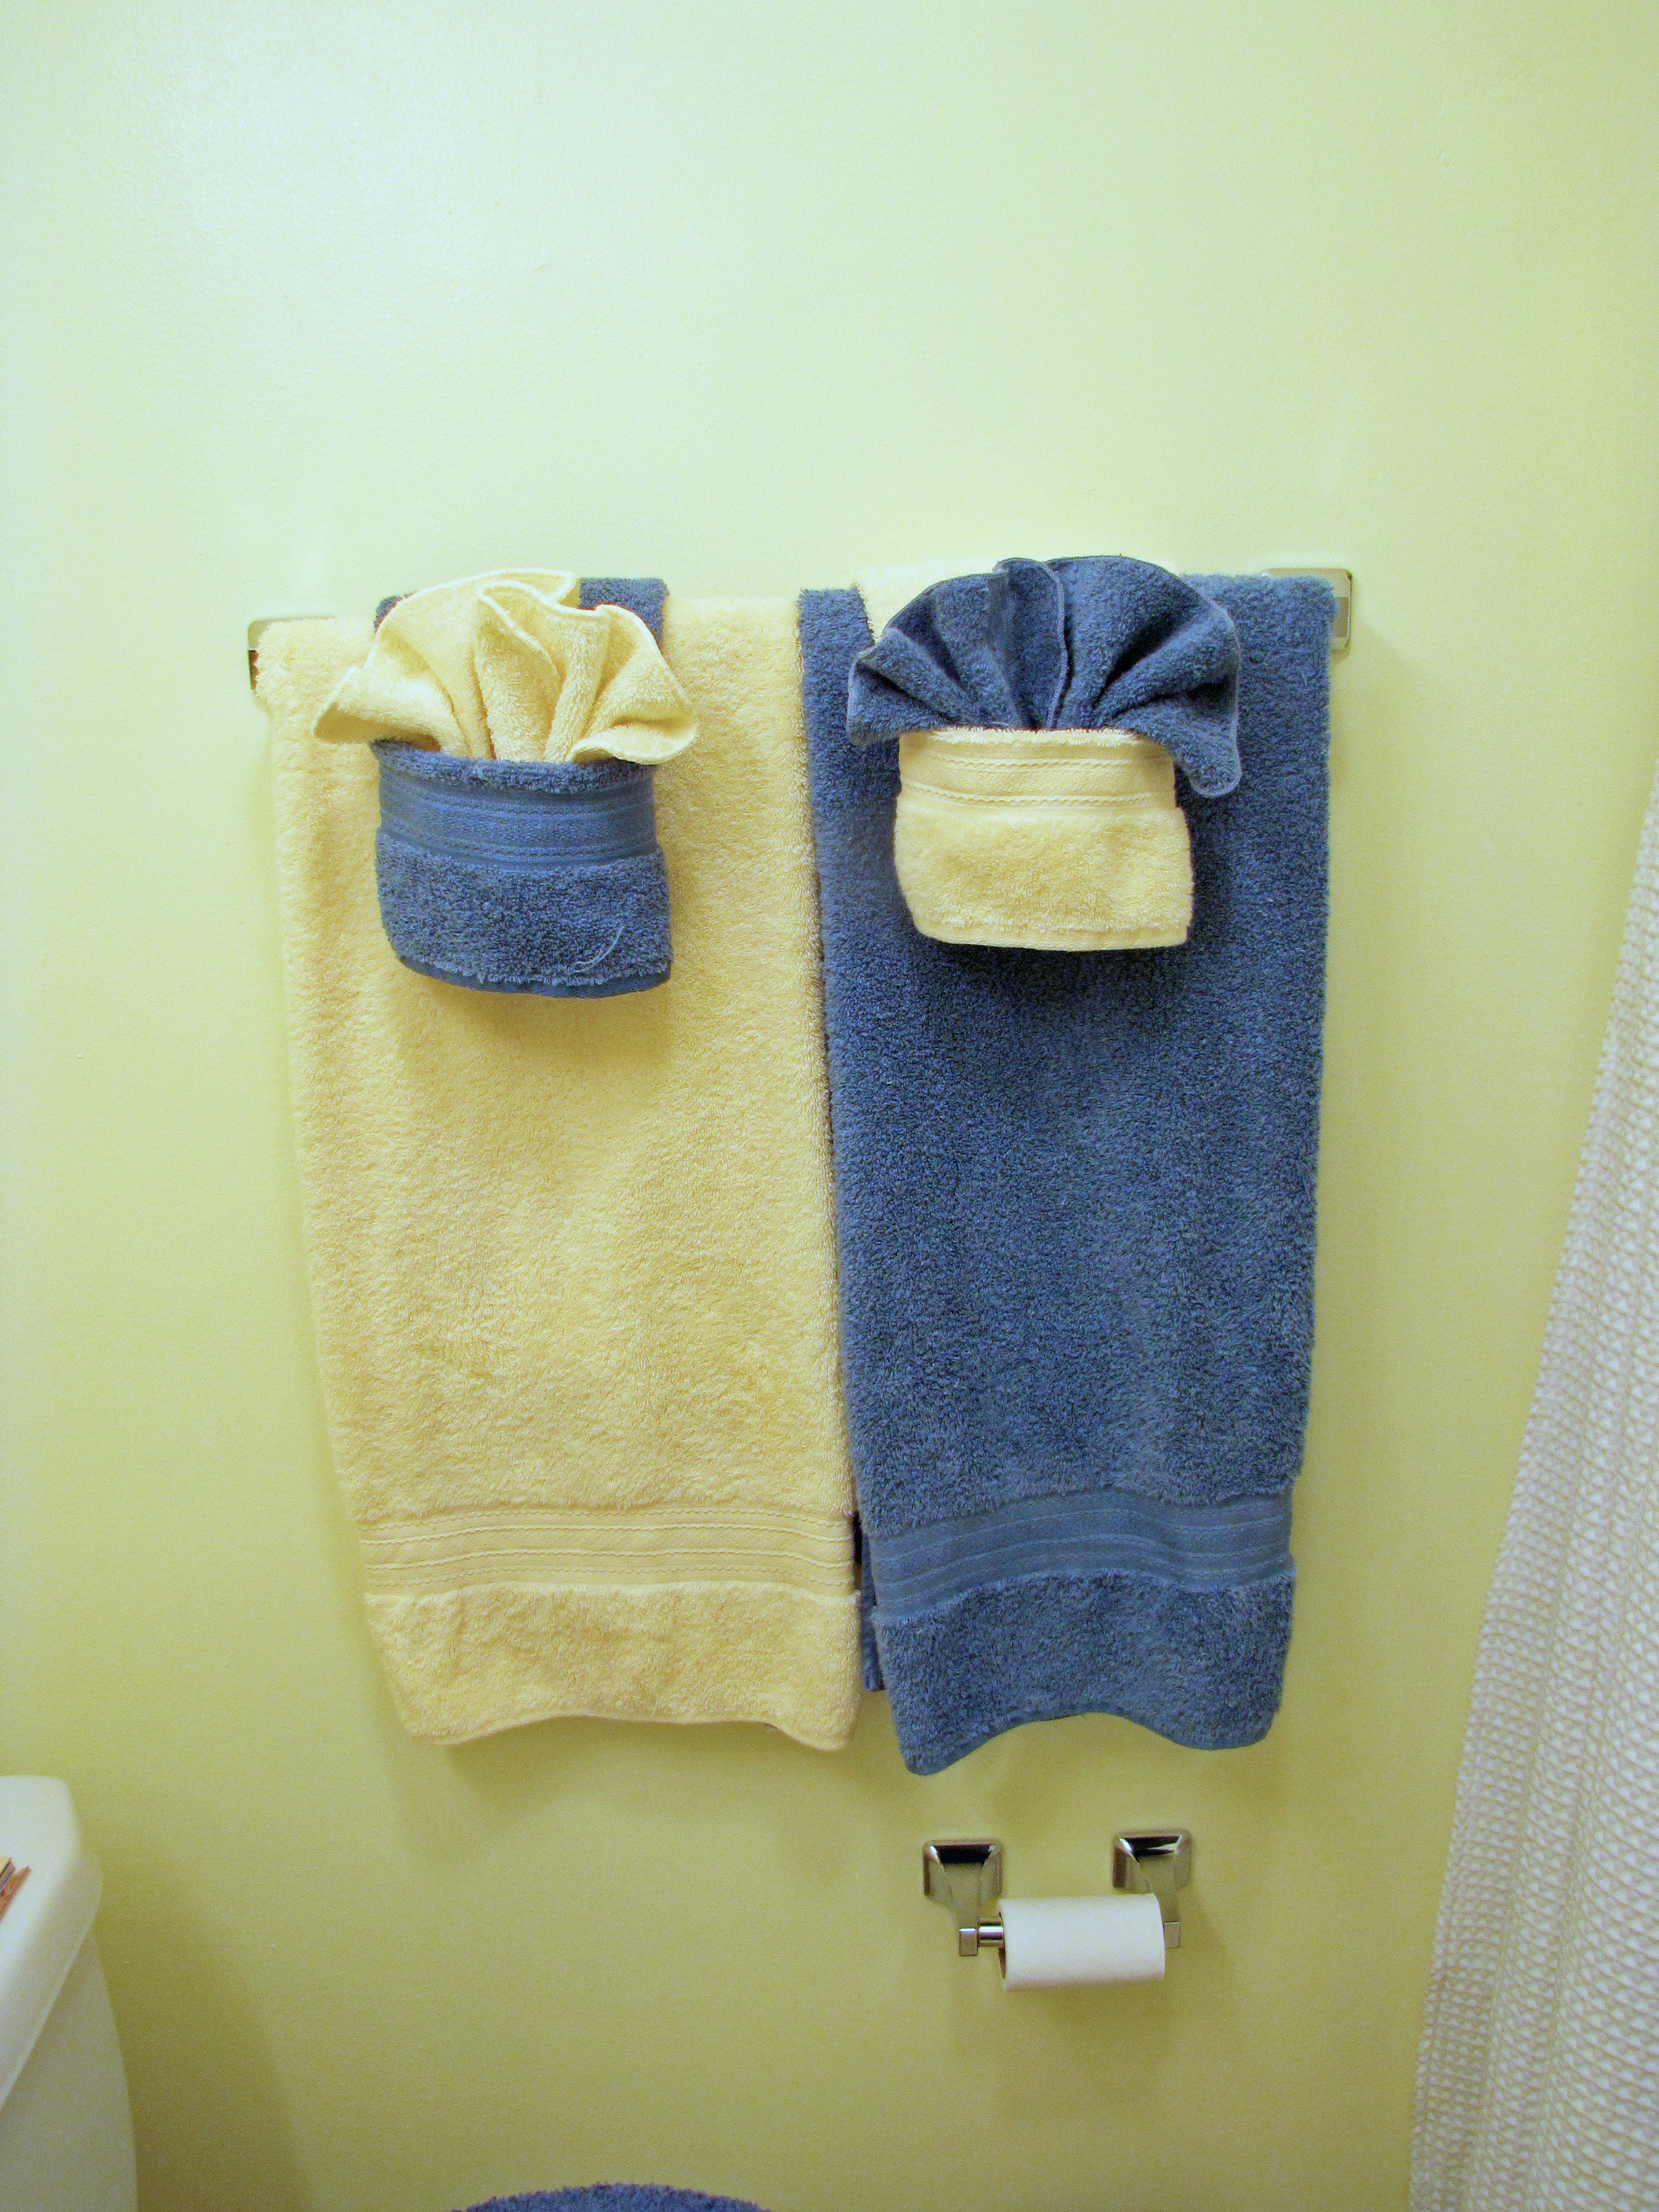 Fancy towels w pockets dinner discourse for How to fold decorative bathroom towels